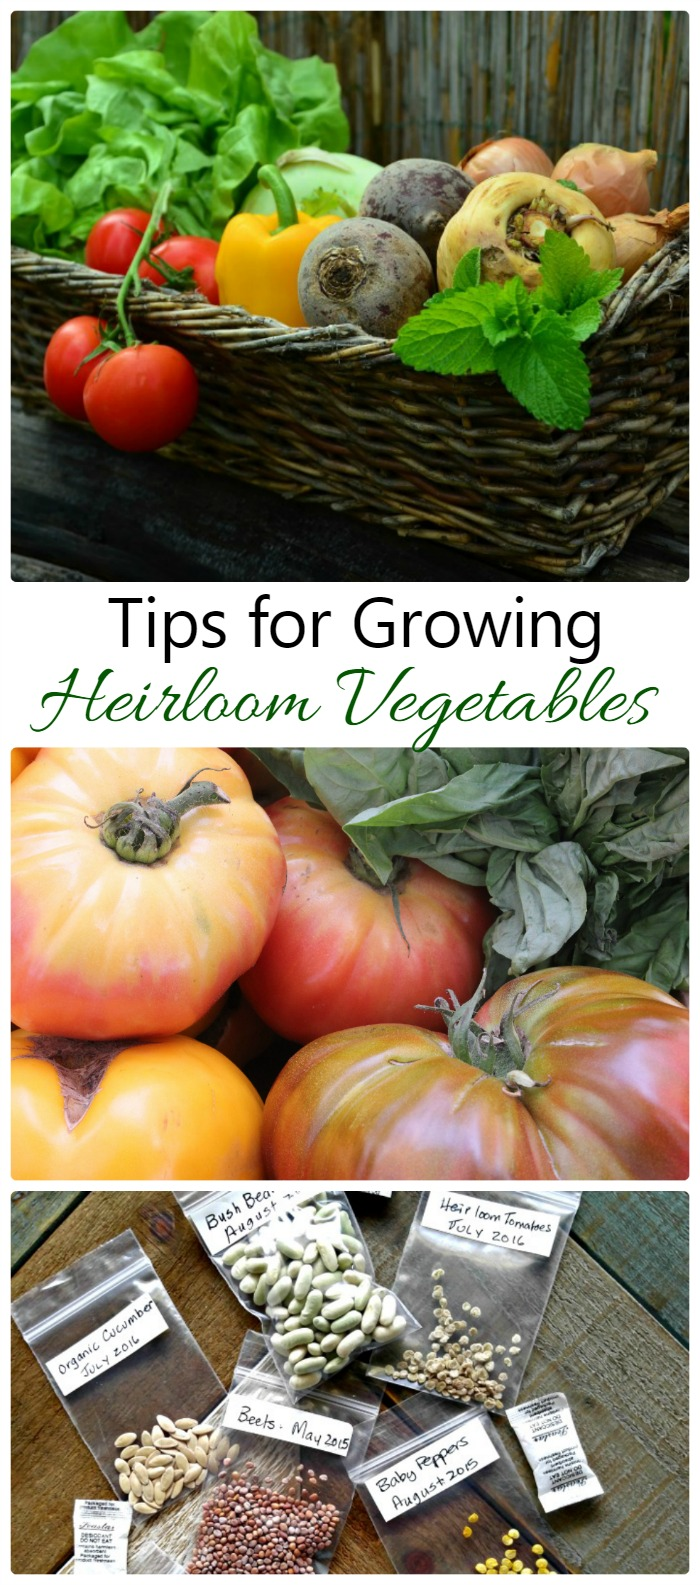 Heirloom vegetables are normally very hardy to a location and grow true to the parent plant. Find out about them and get some tips for growing heirloom seeds. thegardeningcook.com #ecofarmsonline #sponsored